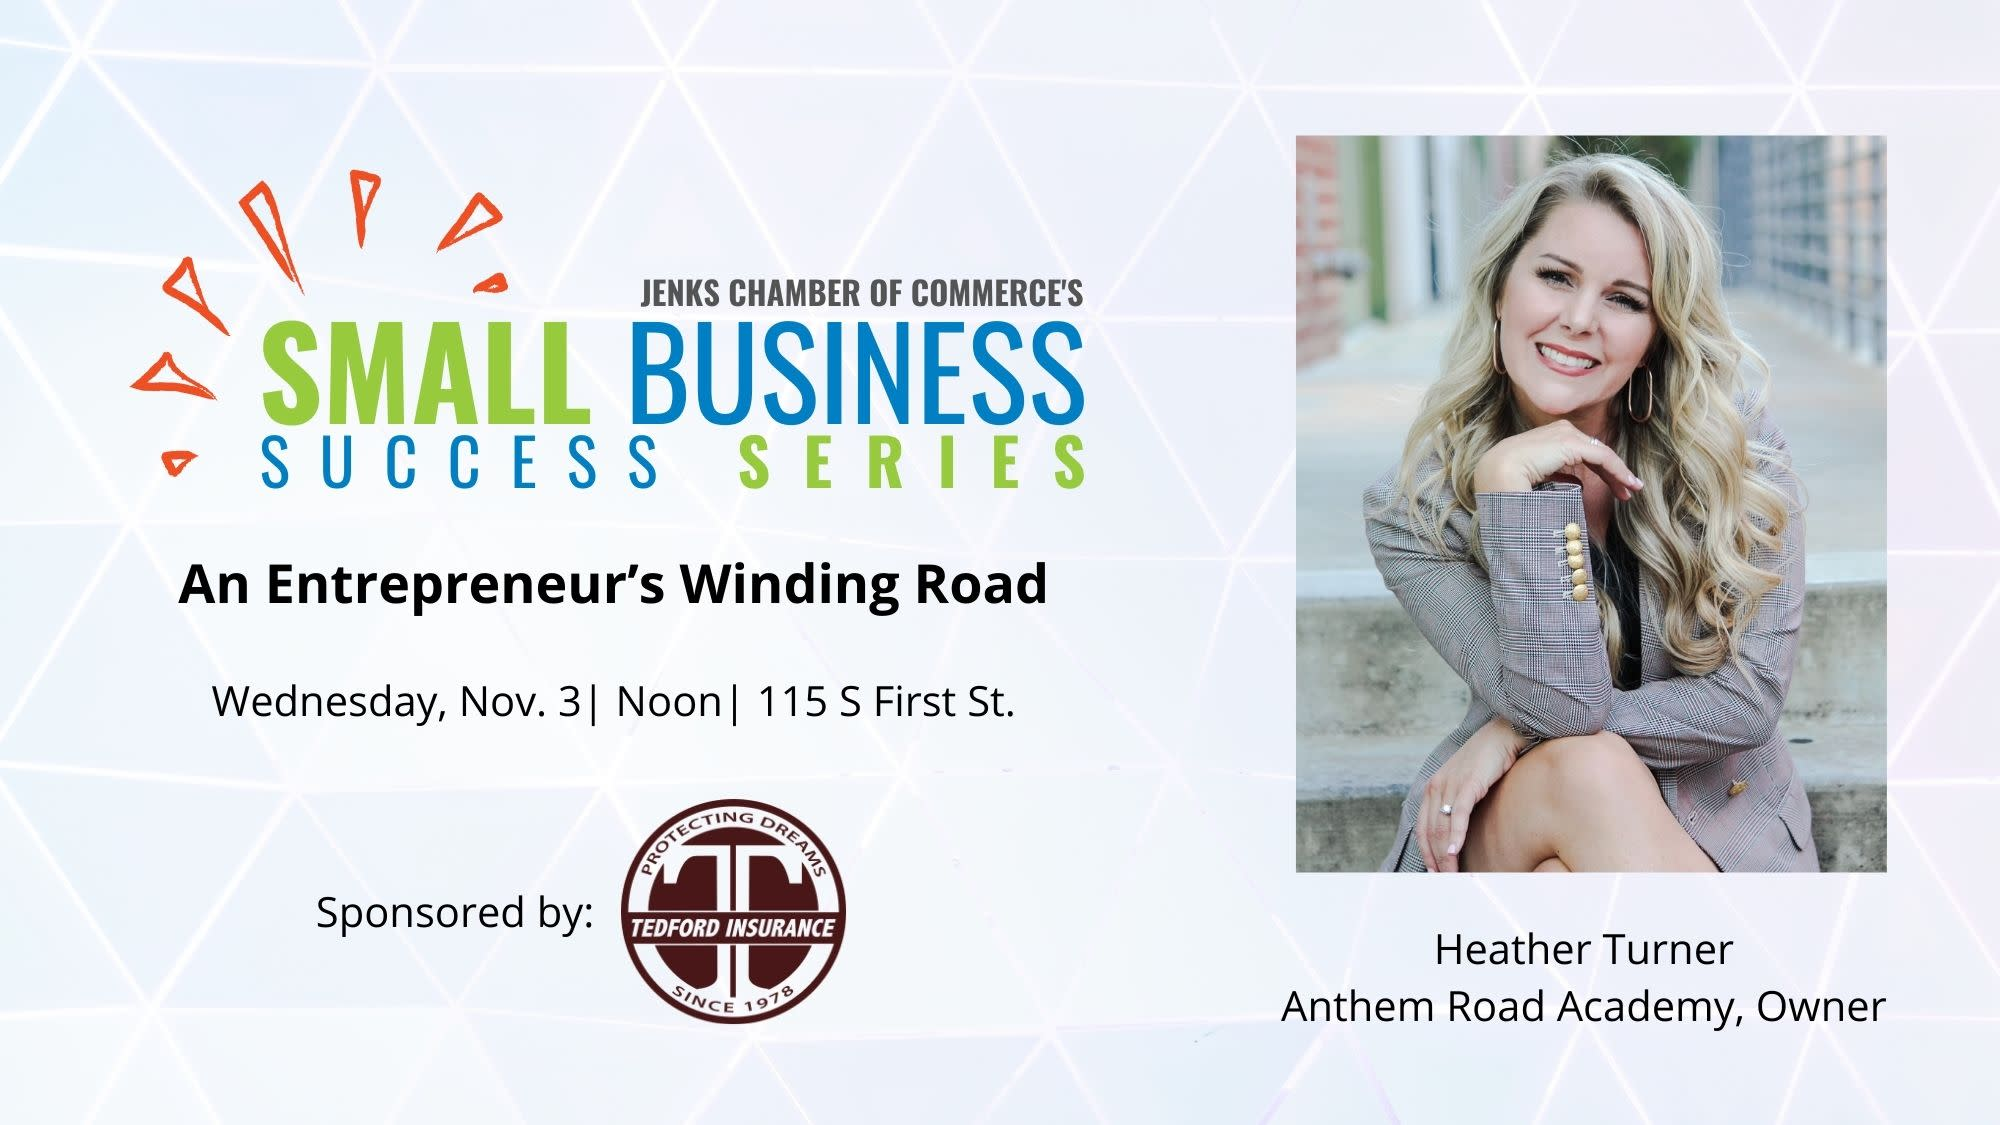 The next Small Business Success Series program will feature Heather Turner of Anthem Road Academy.